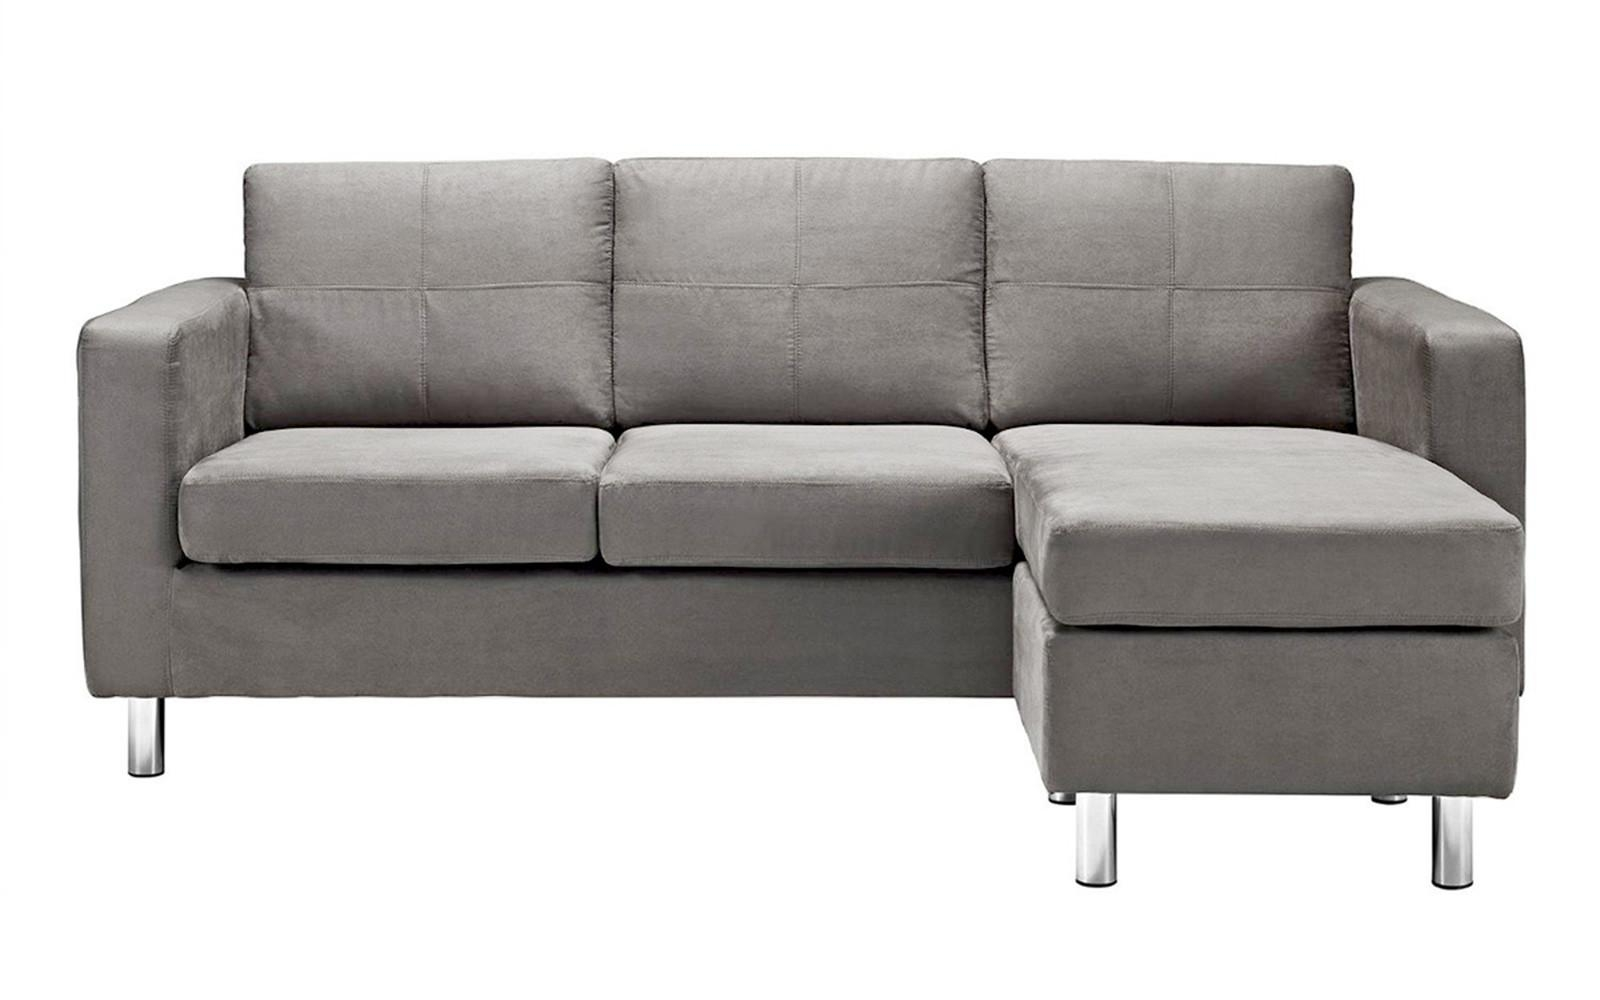 Modern Reversible Small Space Configurable Microfiber Sectional Intended For Modern Small Sectional Sofas (View 3 of 20)